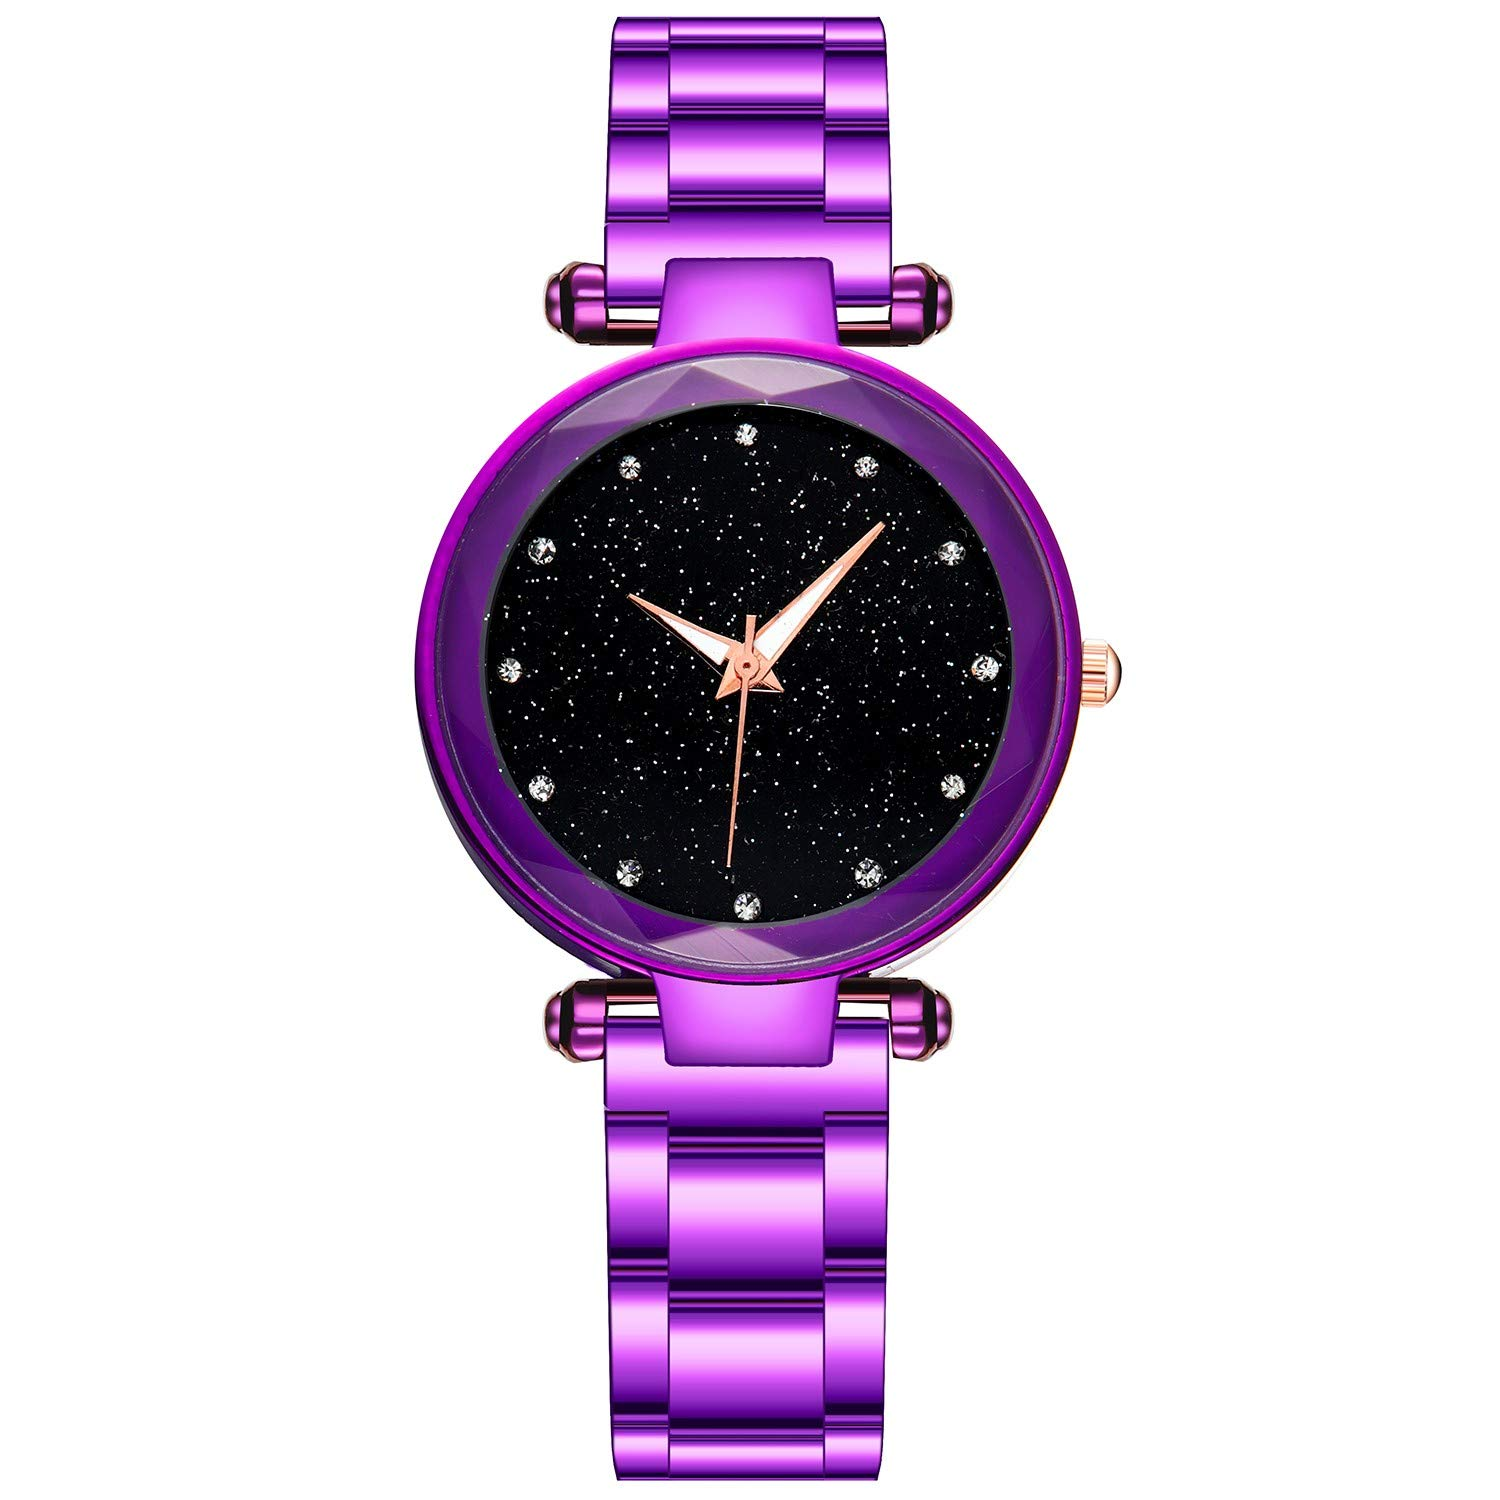 Toponly Women Watch Black Ultra Thin Wrist Watches for Women Fashion Waterproof Dress Stainless Steel Band